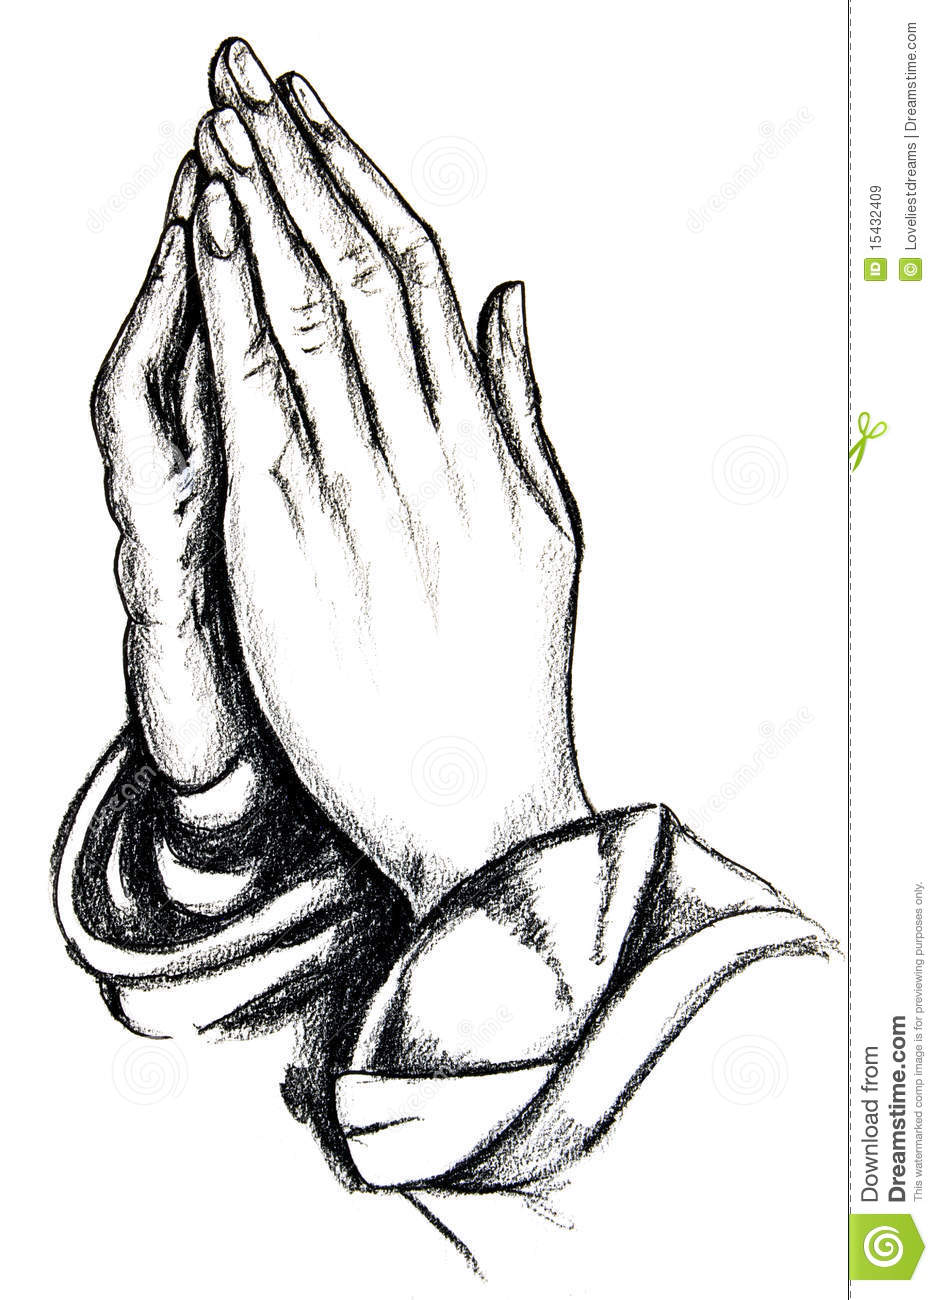 Praying hands royalty free stock images image 15432409 Drawing images free download